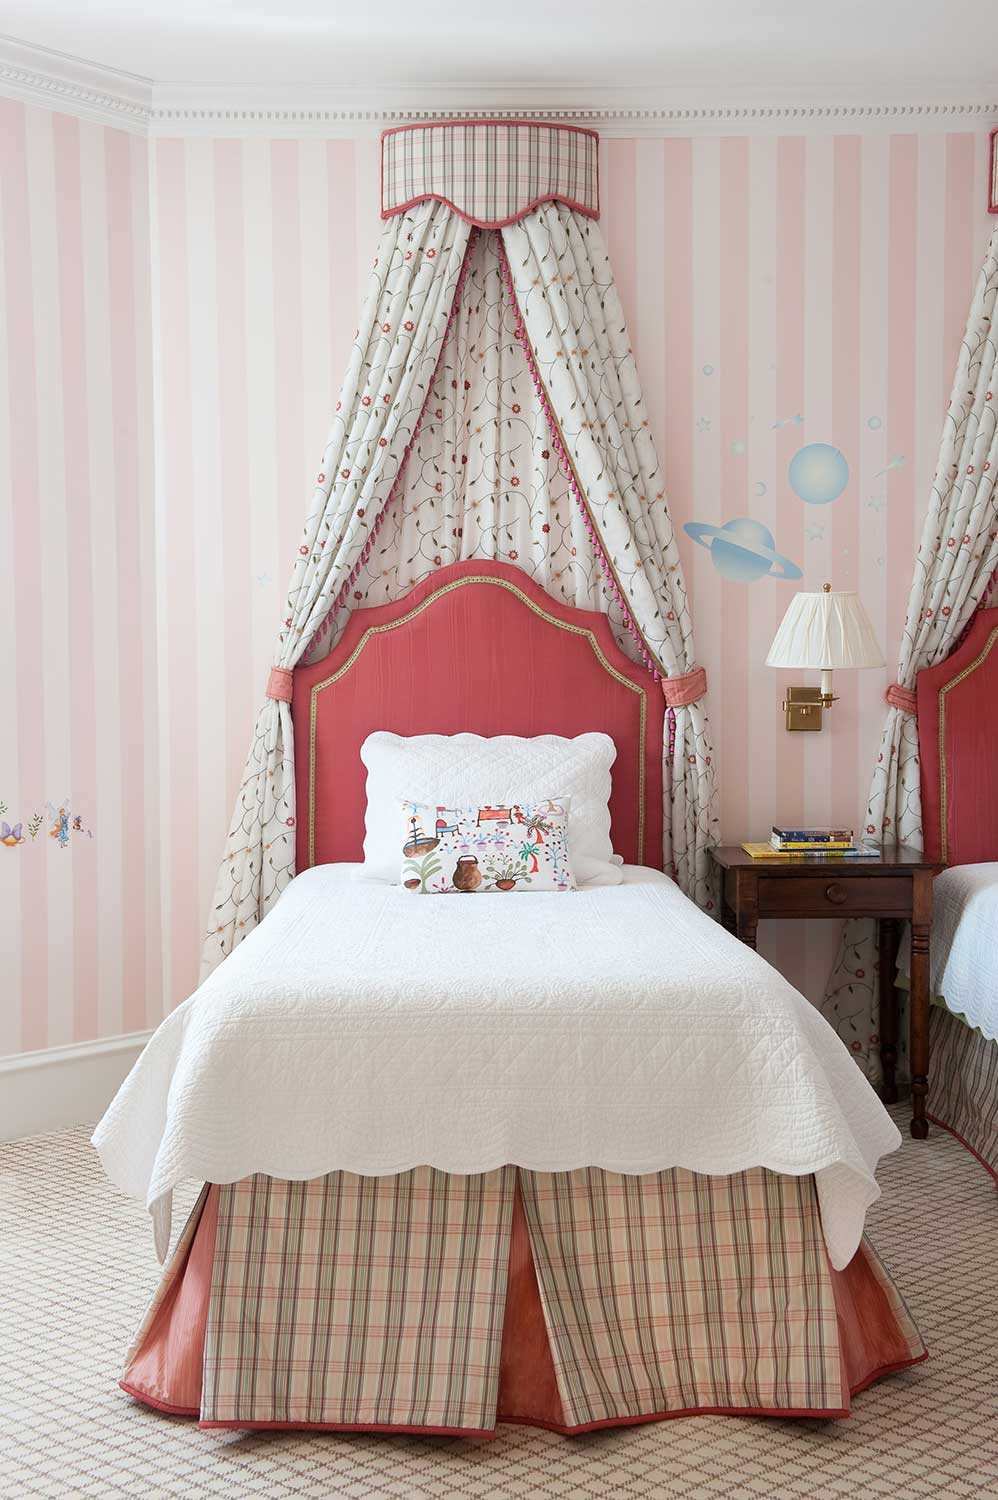 decorative_bed_tent_for_girls_room.jpg